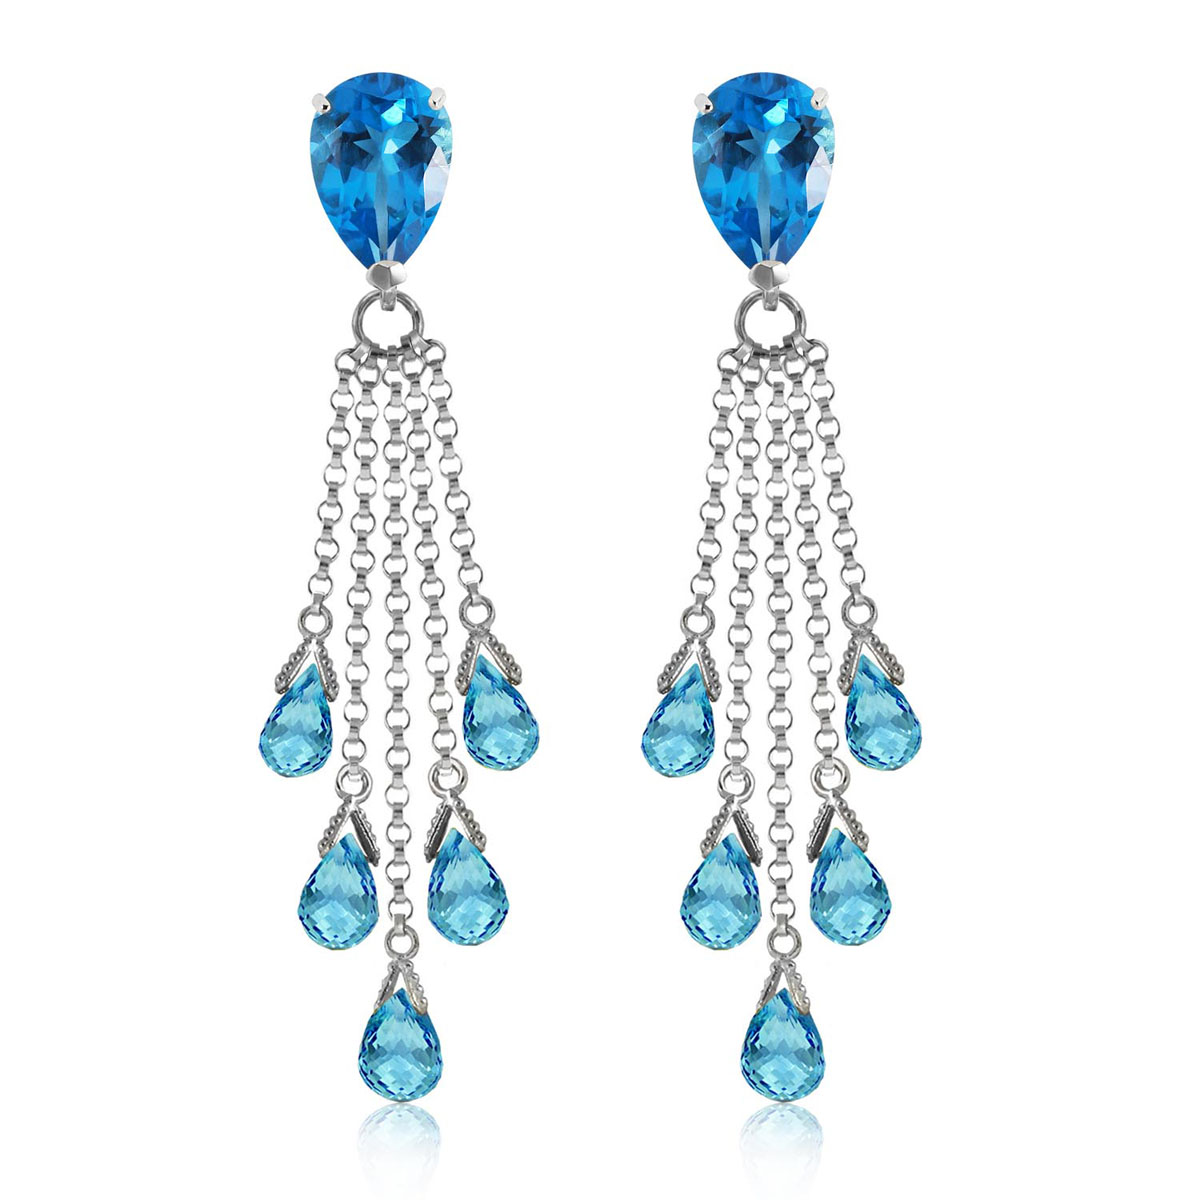 Blue Topaz Comet Tail Drop Earrings 15.5 ctw in 9ct White Gold